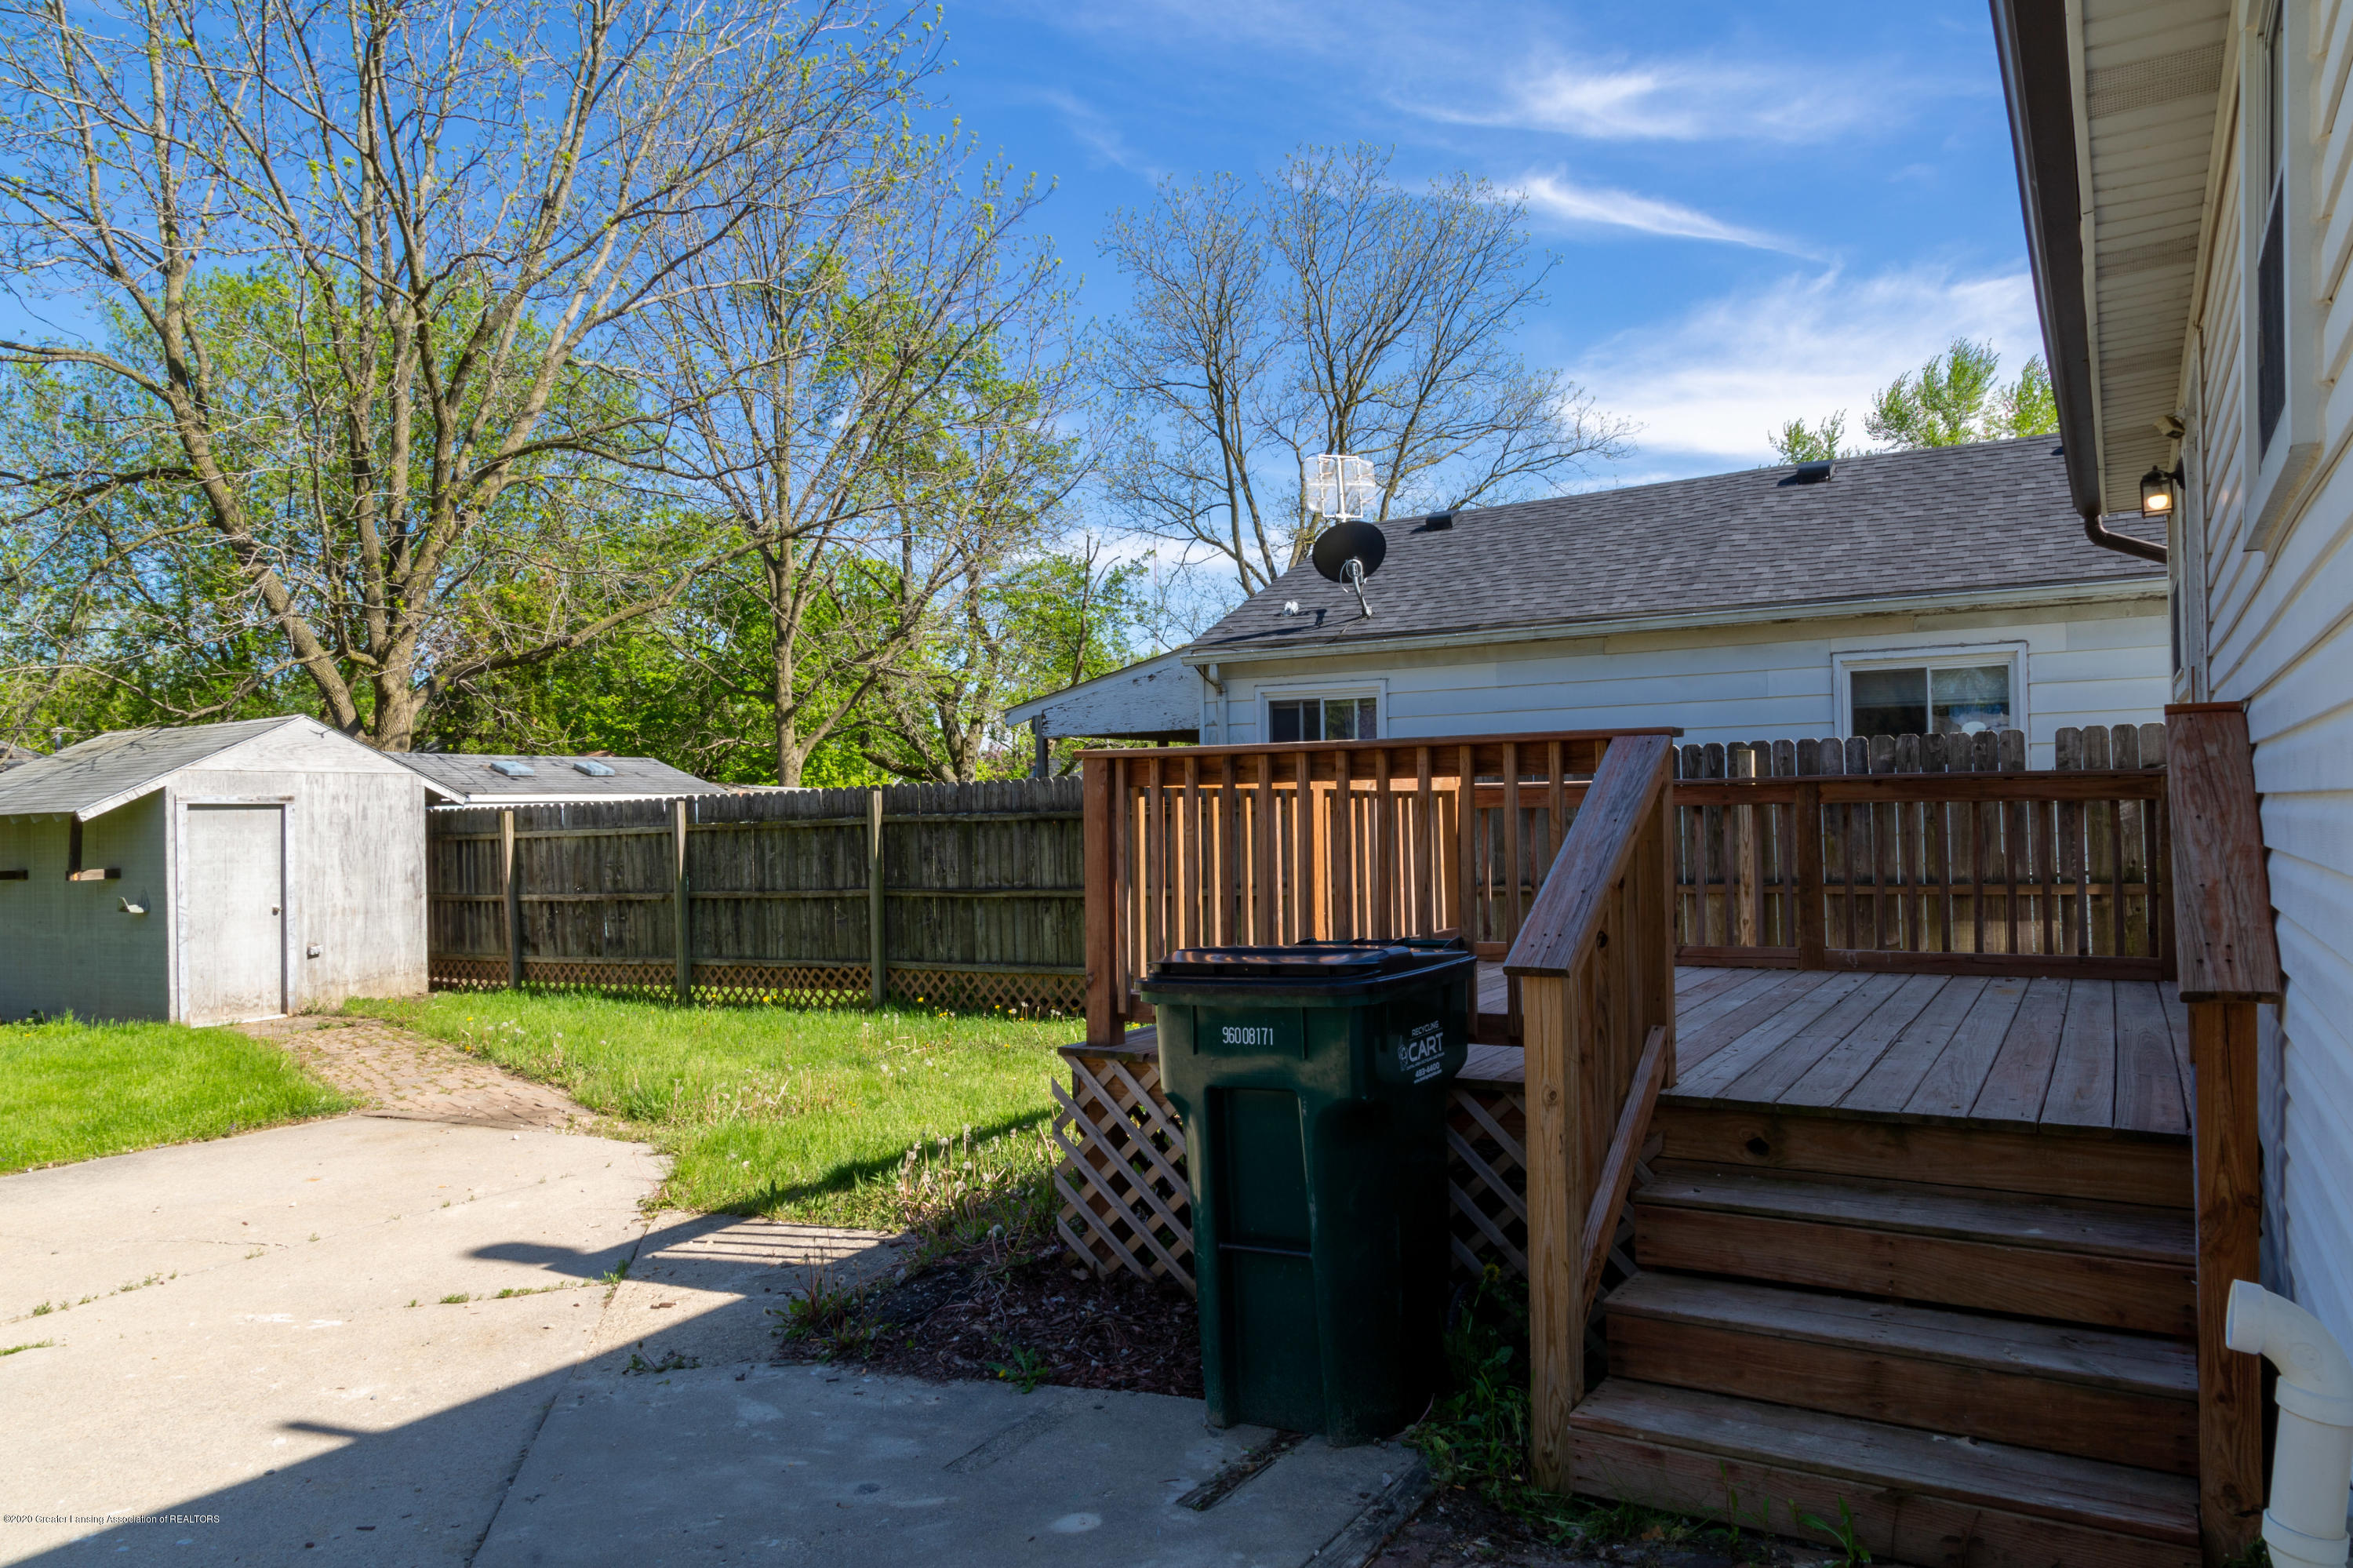 3623 Burchfield Dr - 20200520-942A6607-HDR - 24